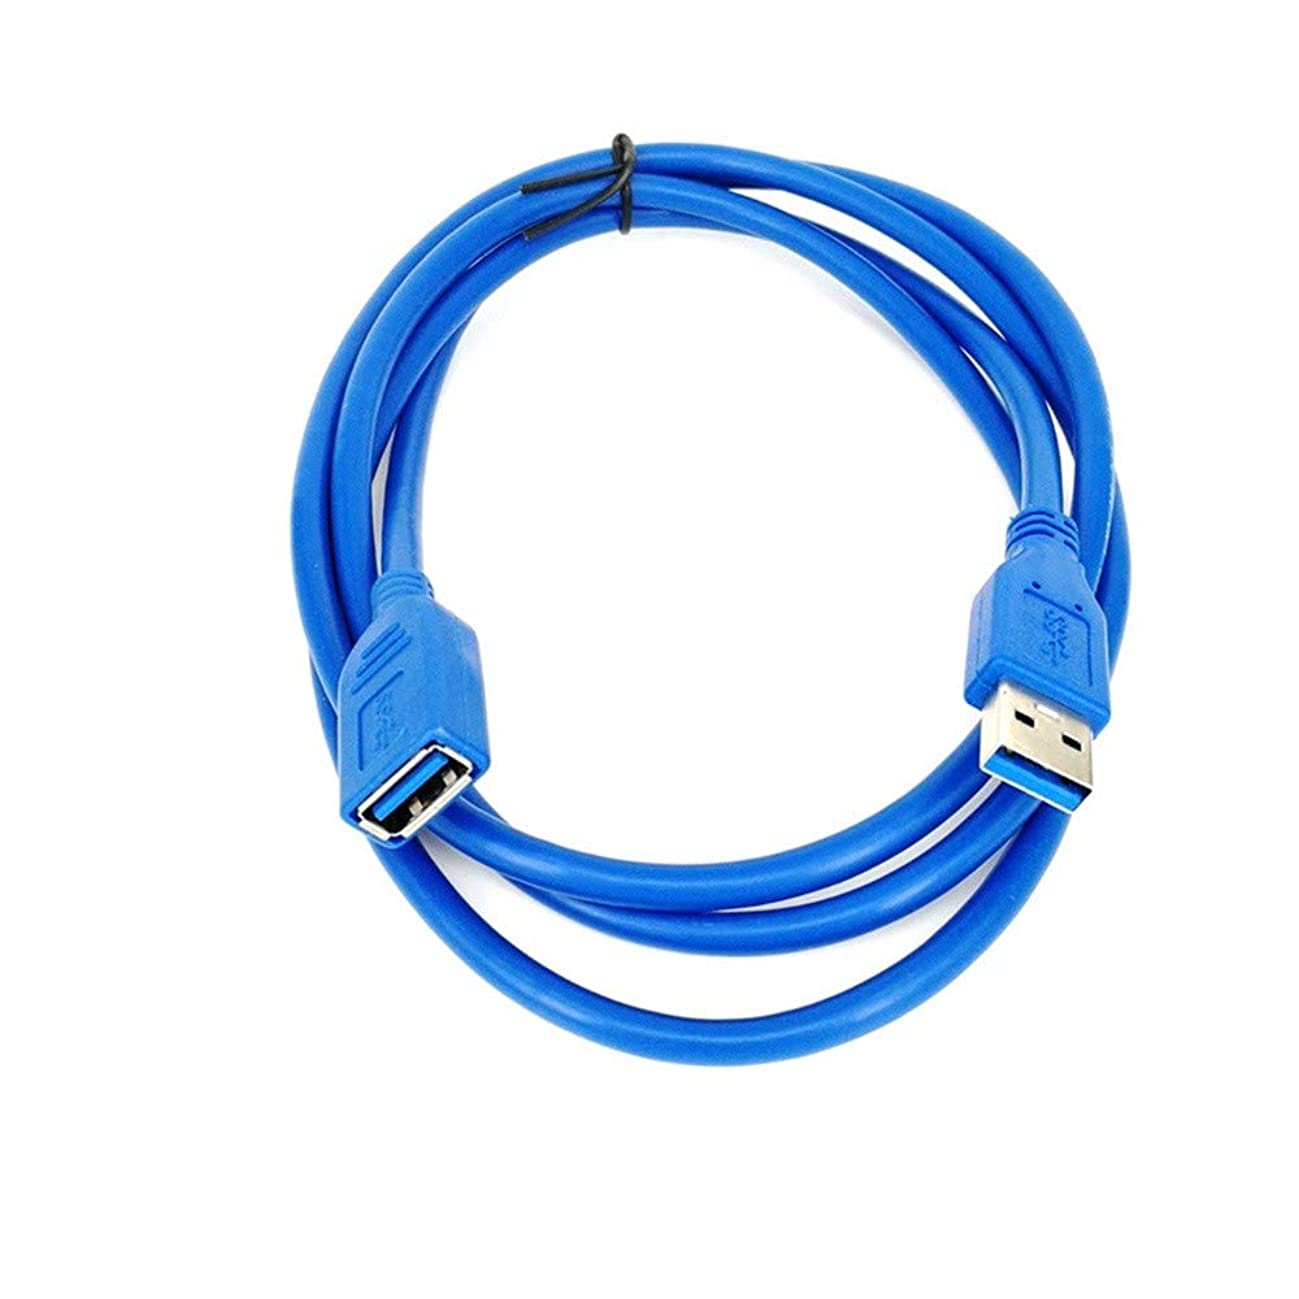 5M USB 3.0 A Male to Female Extension Data Sync Cord Cable 5Gbps